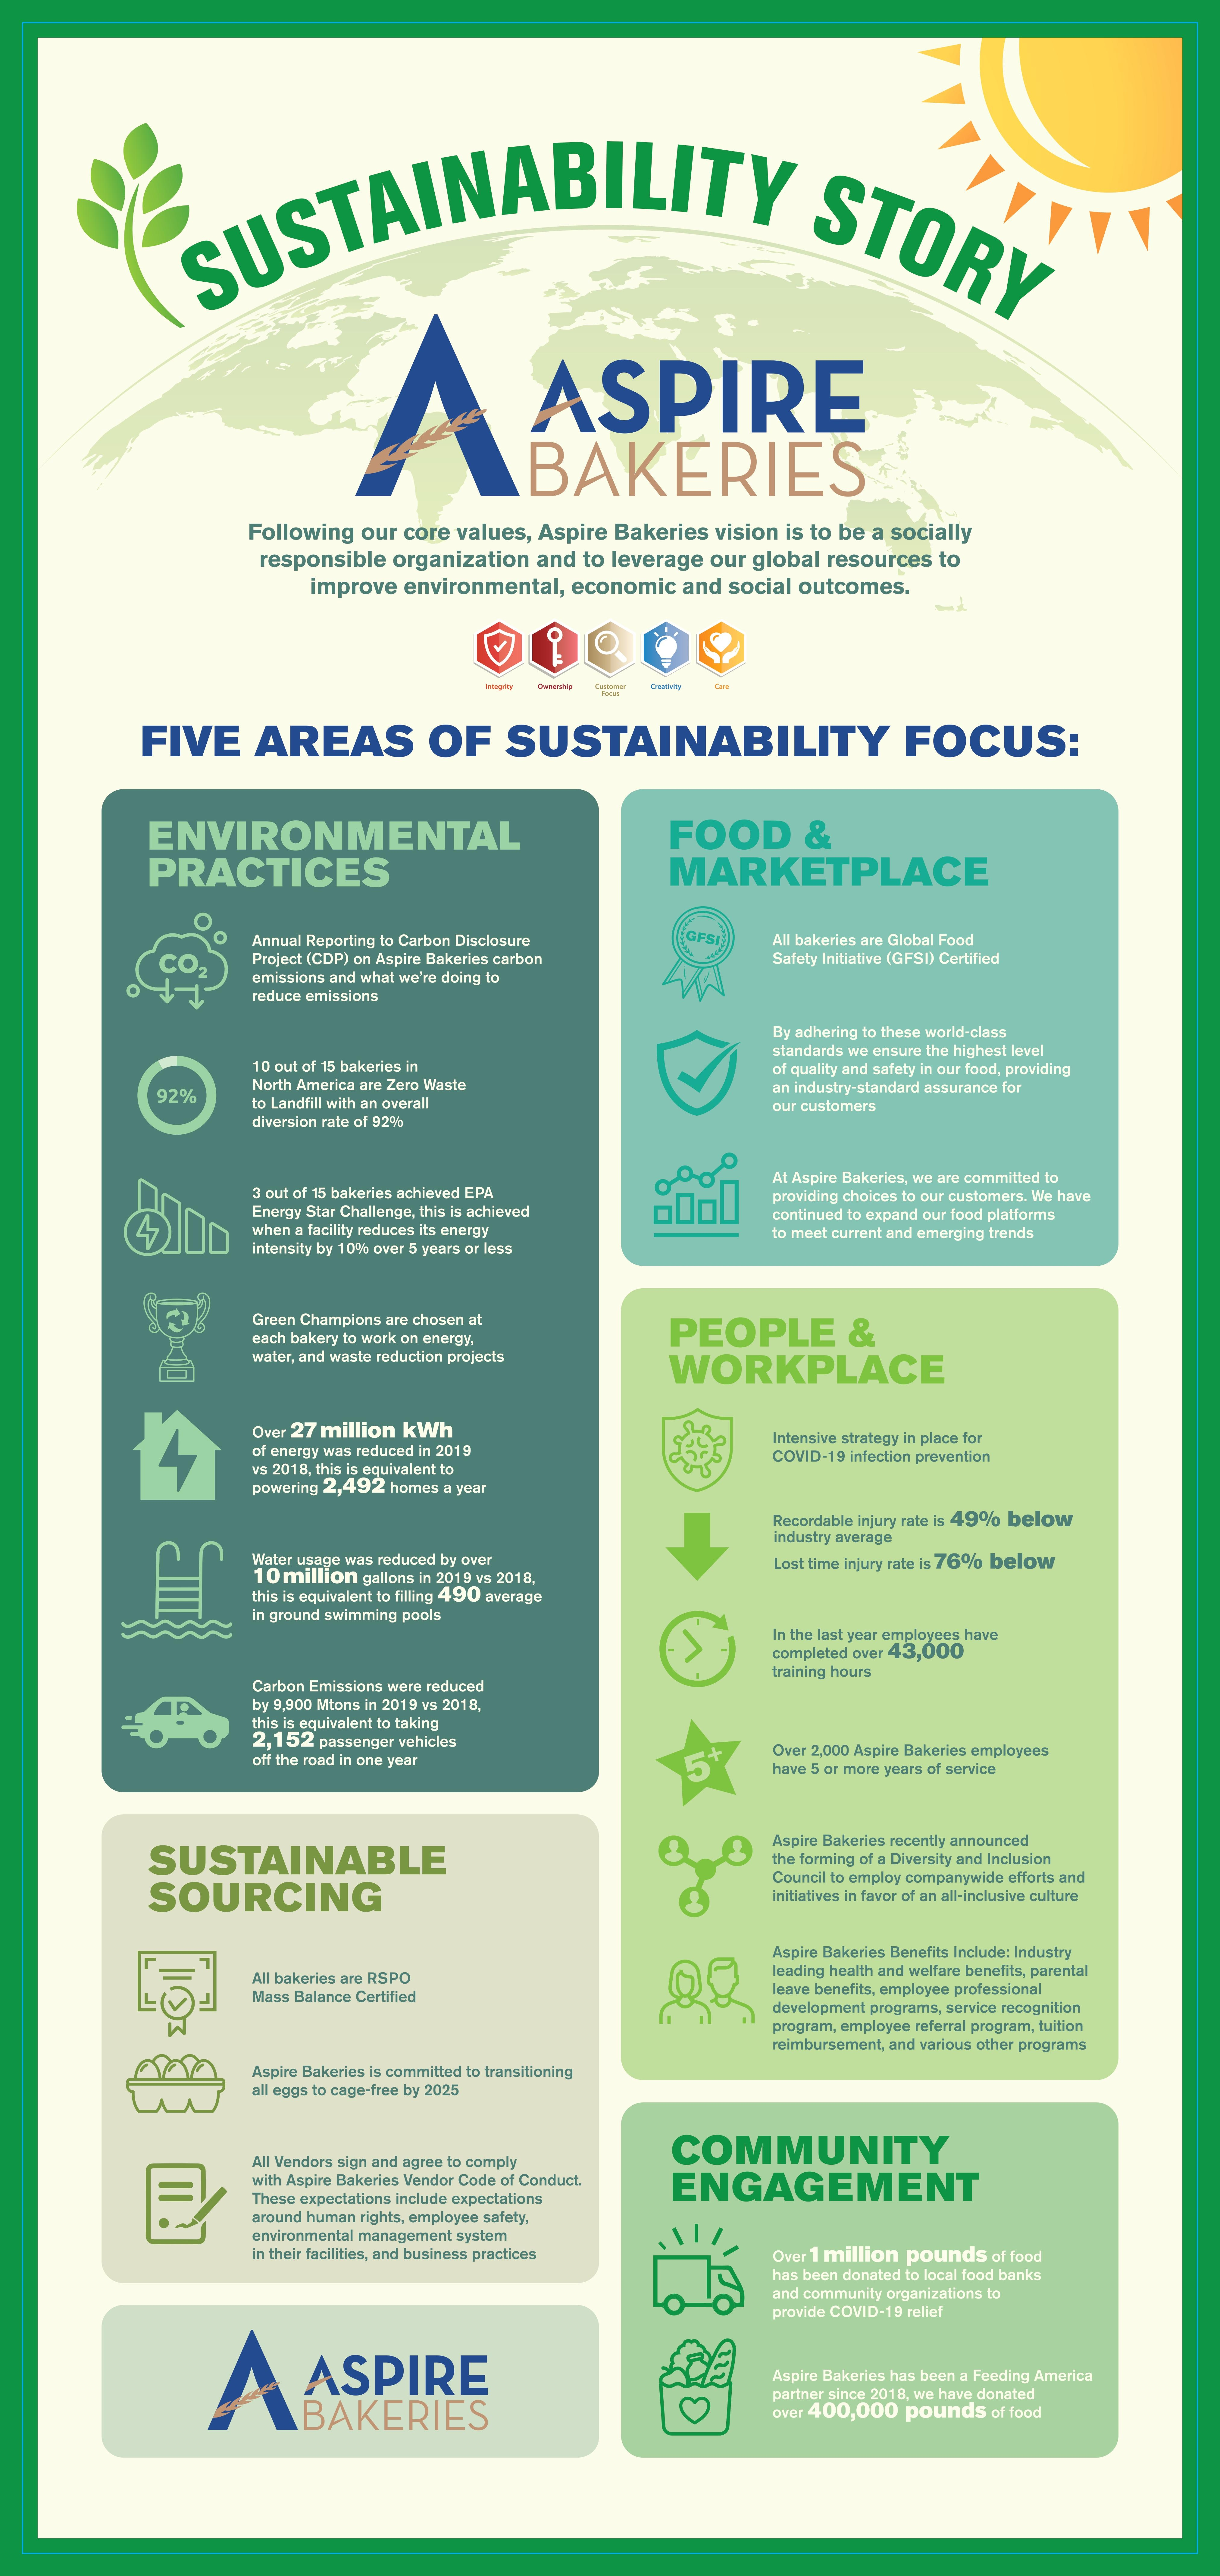 Five Focus Areas of Our Sustainability Strategy